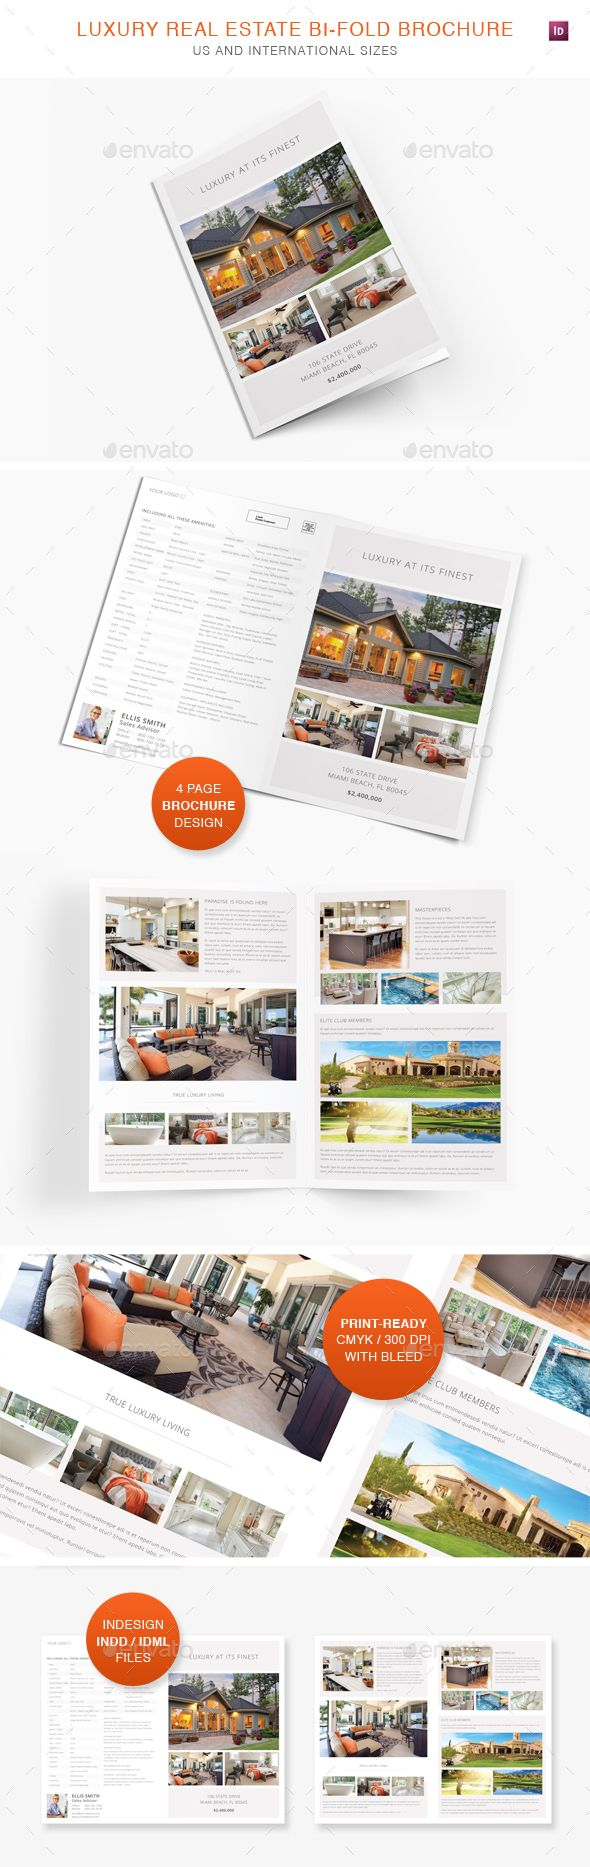 marketing brochures templates - luxury real estate bi fold brochure luxury real estate